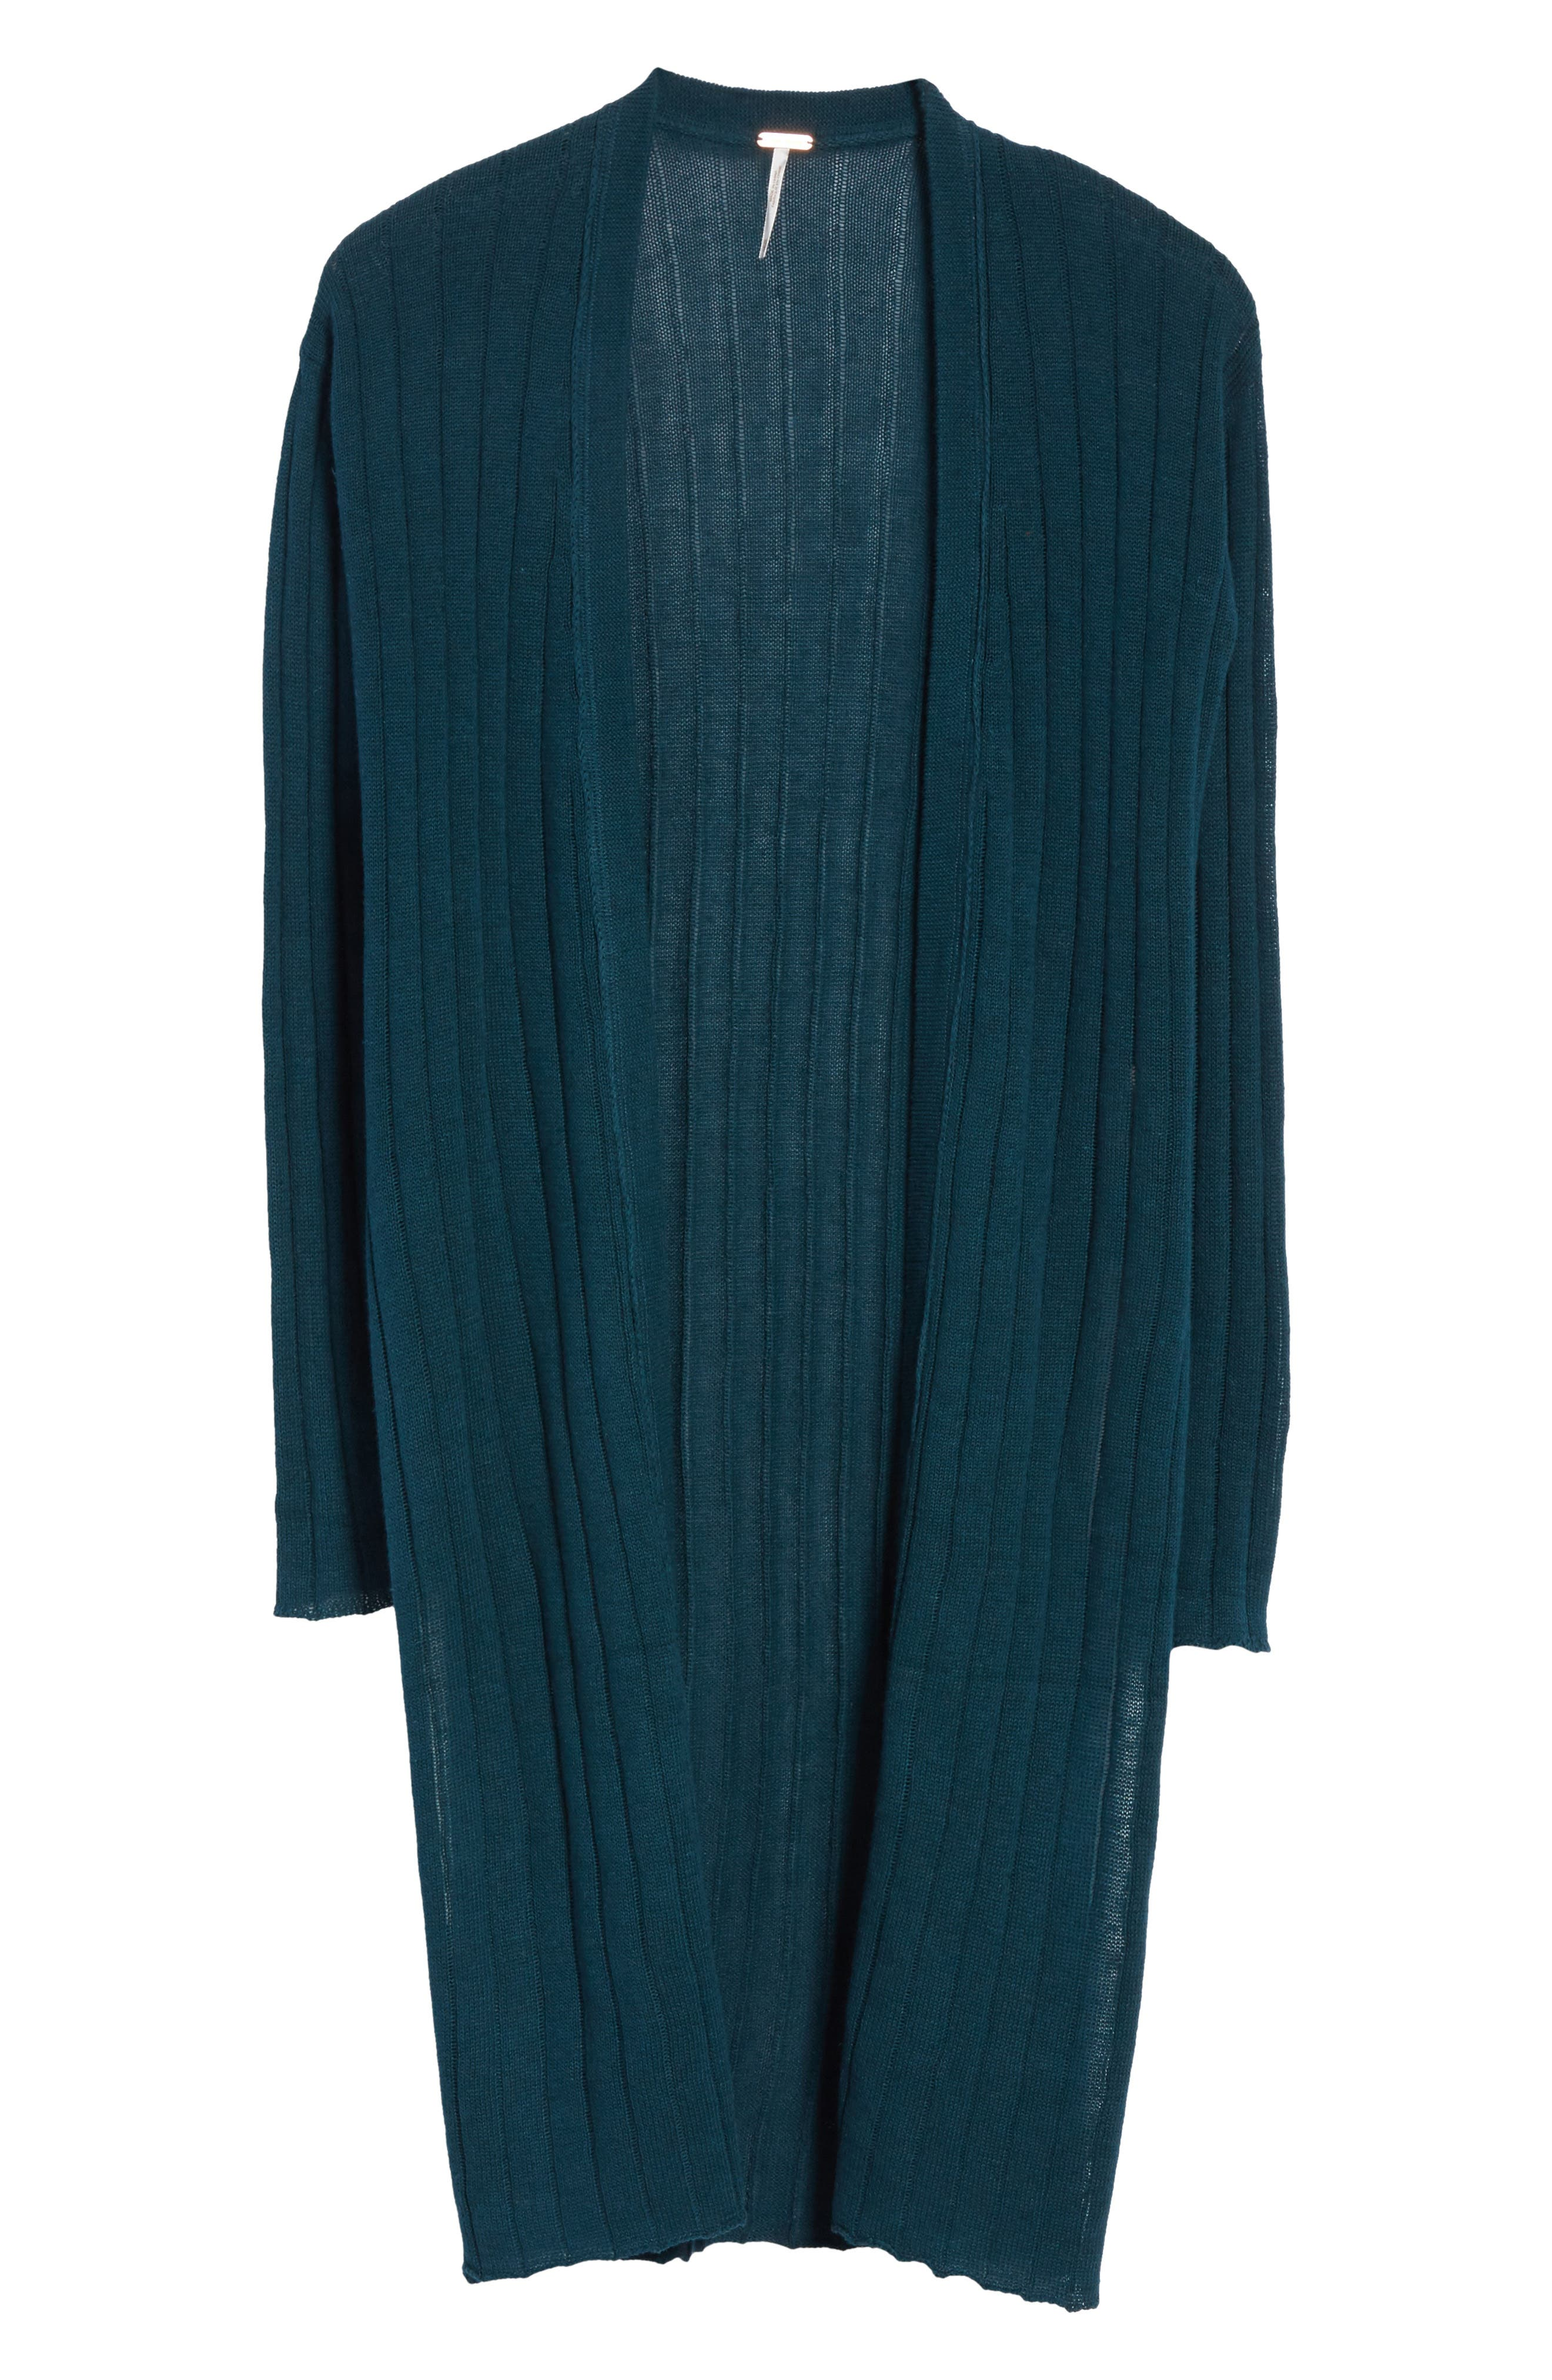 FREE PEOPLE,                             Ribby Long Cardigan,                             Alternate thumbnail 6, color,                             440